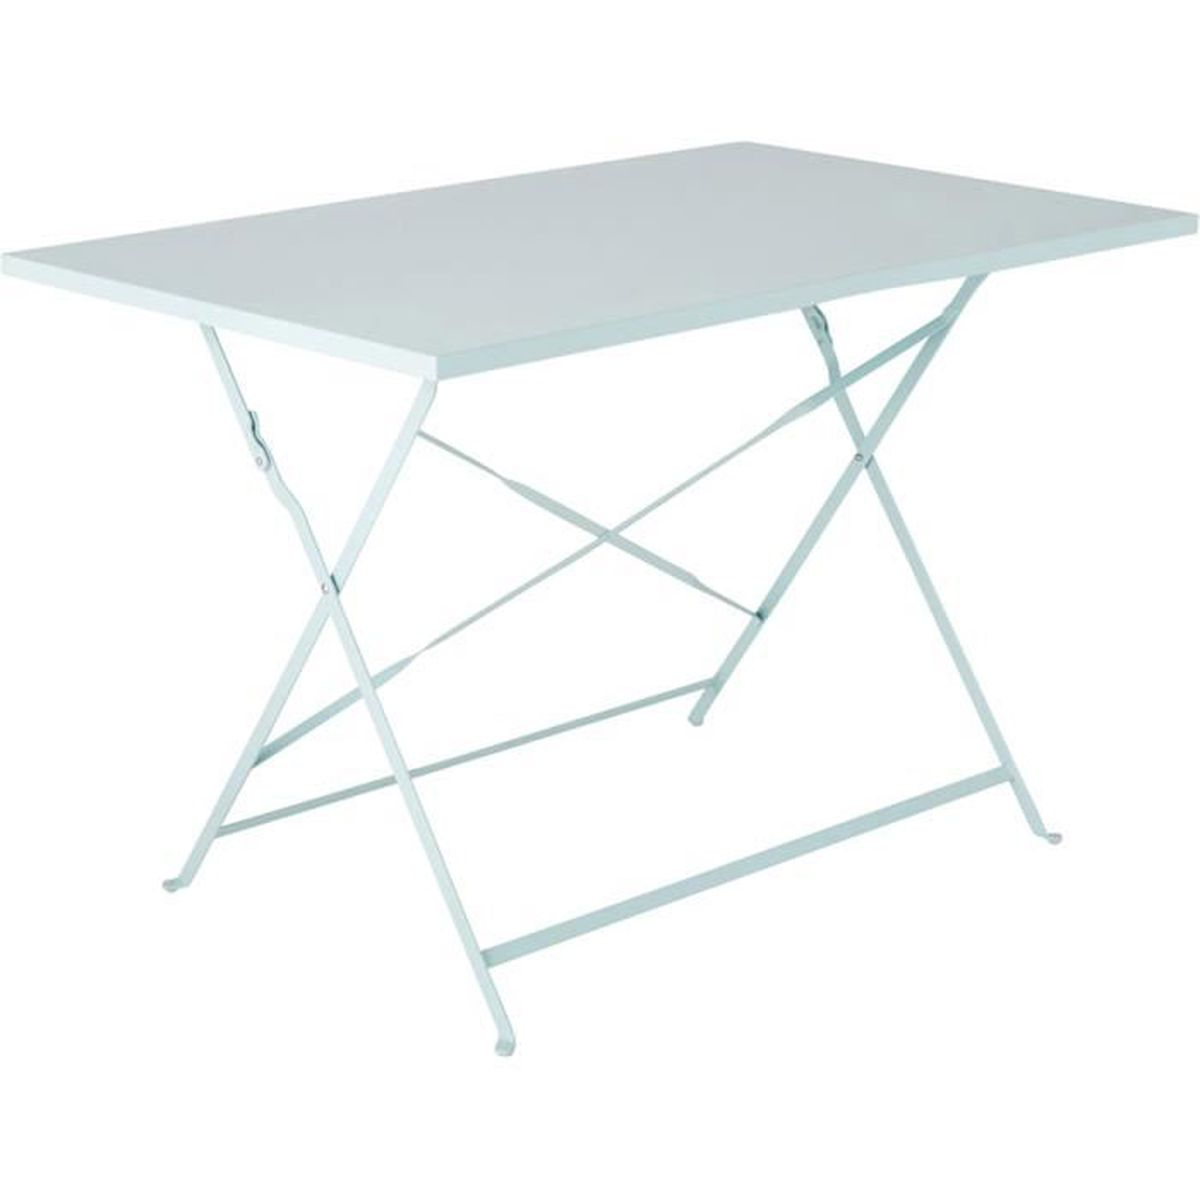 Emejing Table De Jardin Pliable Cdiscount Pictures - House Design ...